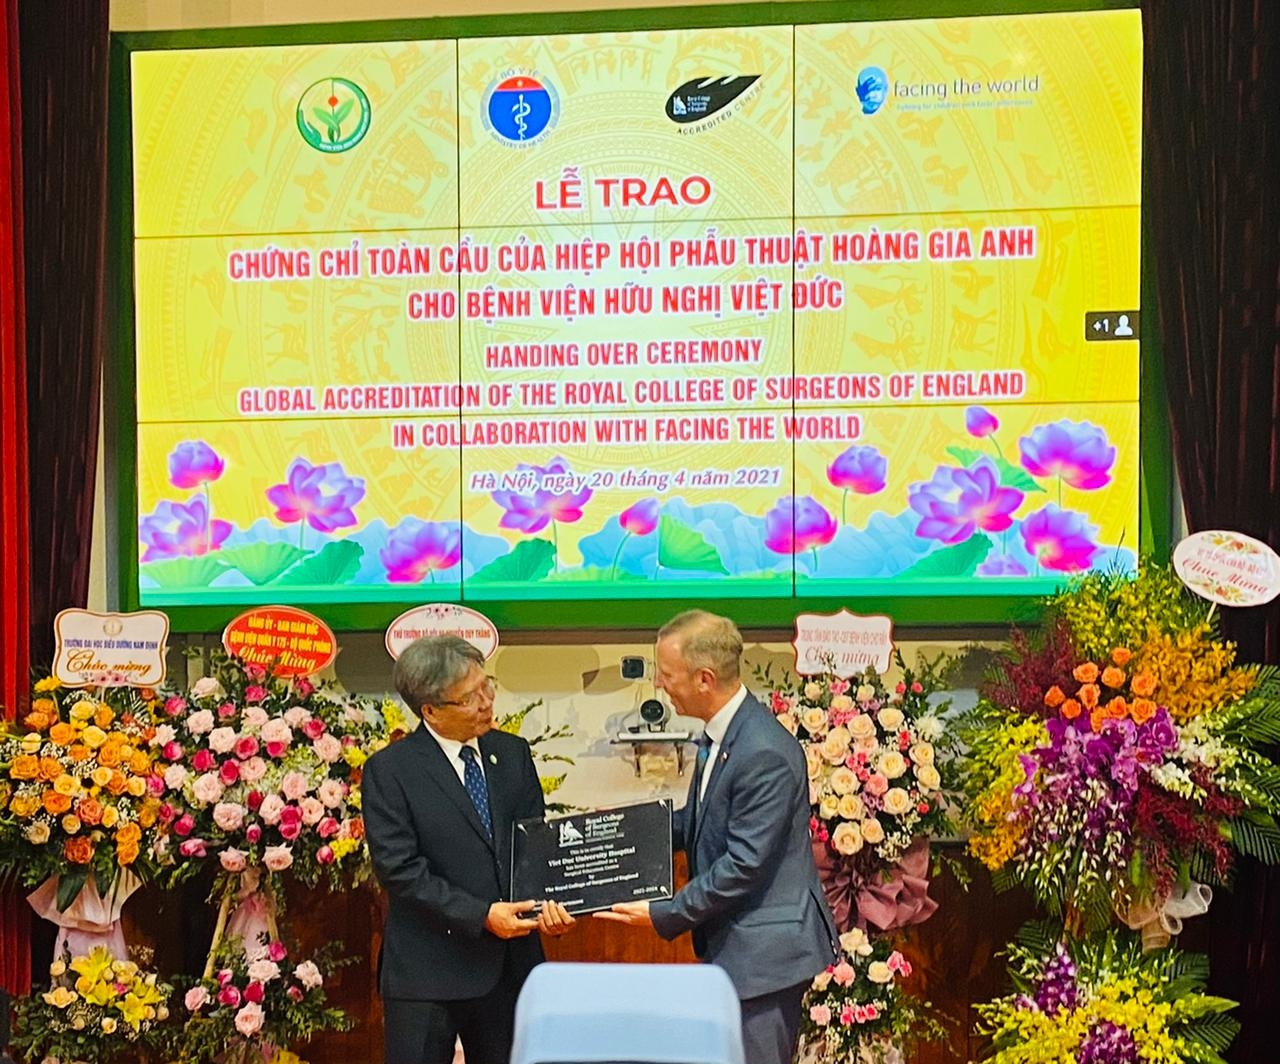 Vietnam's hospital awarded Royal College of Surgeons' global accreditation